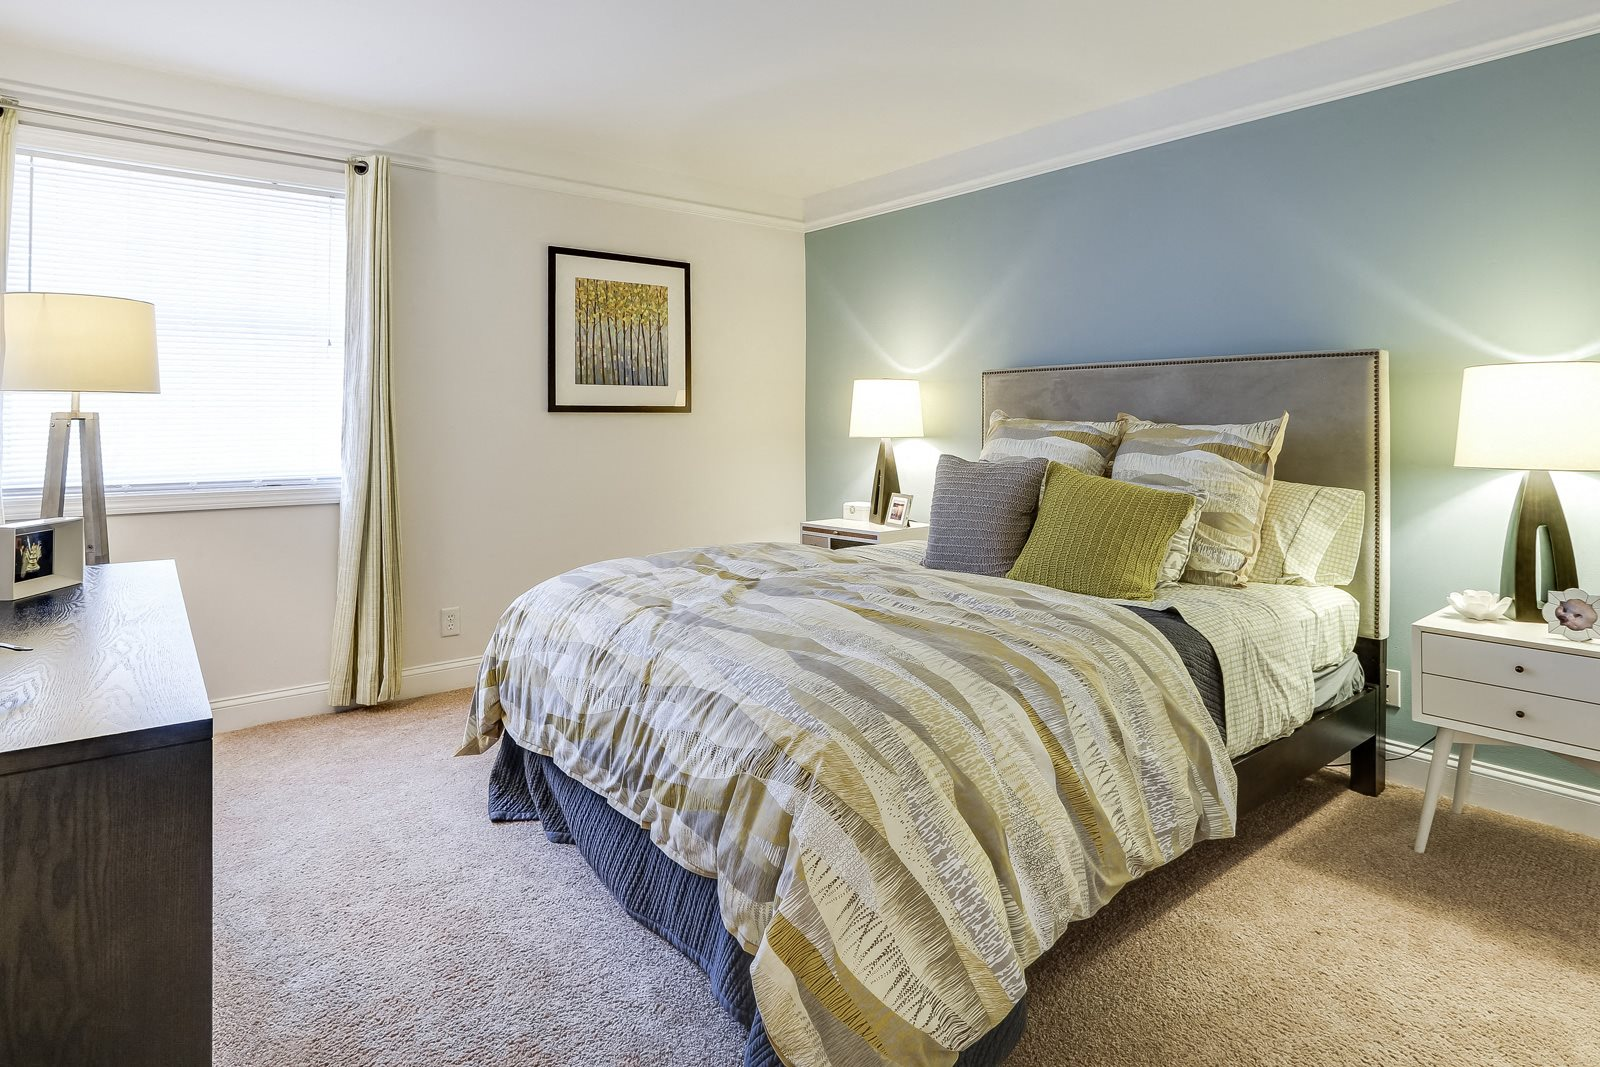 King-Sized Bedrooms at Windsor Village at Waltham, Waltham, Massachusetts